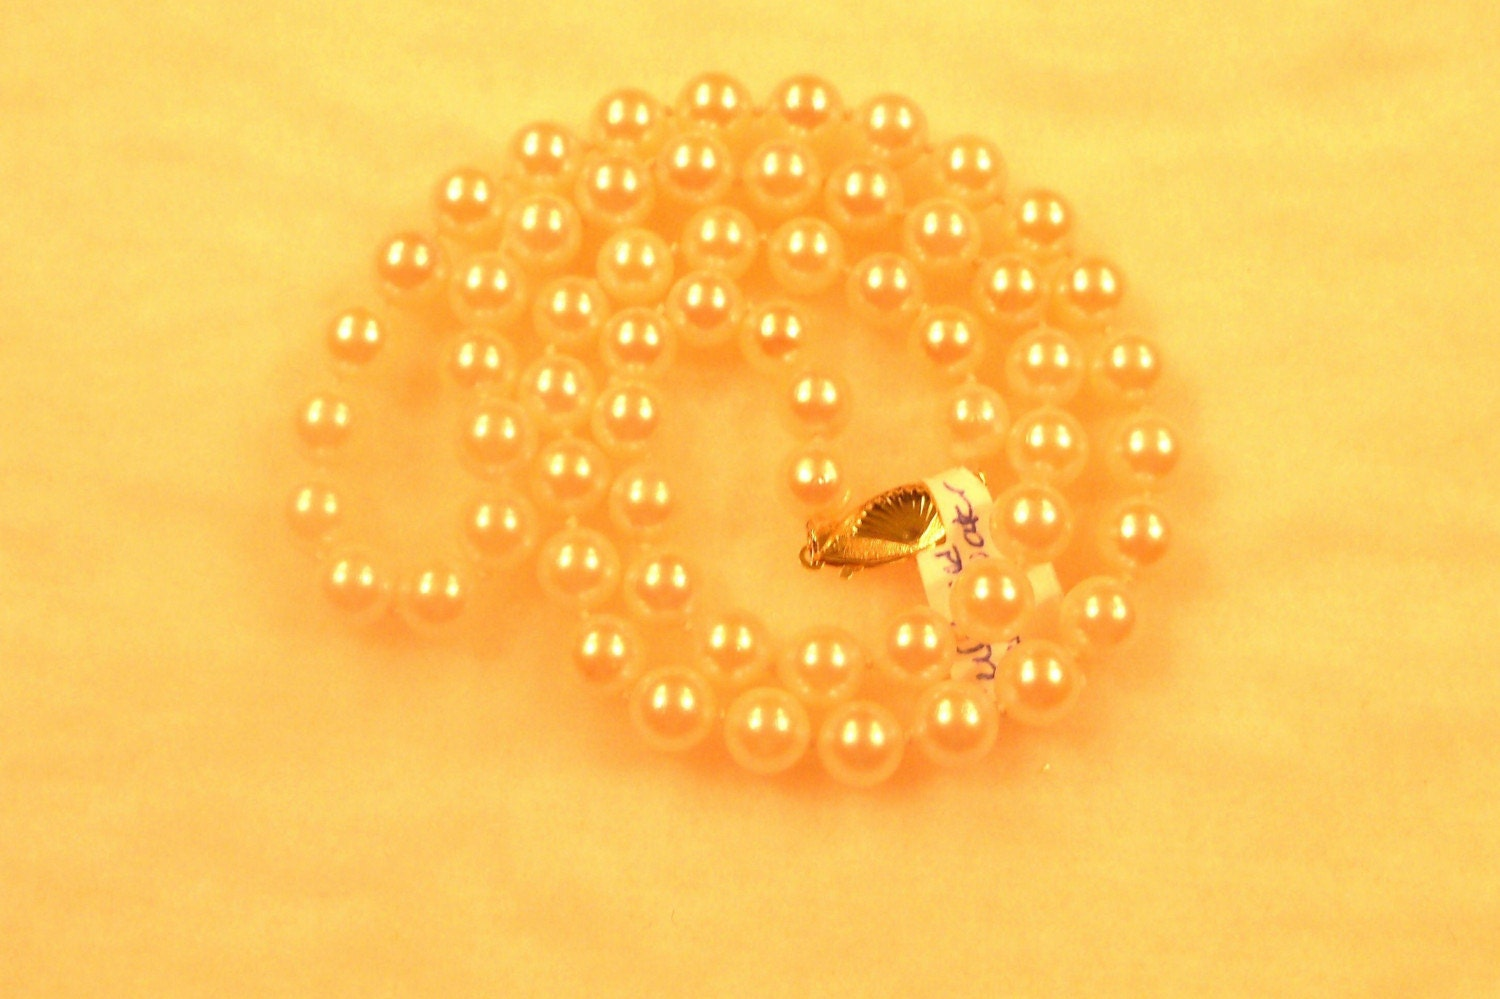 VINTAGE LADIES CULTURED SALTWATER PEARL NECKLACE-INCLUDES WRITTEN APPRAISAL 1200 DOLLARS